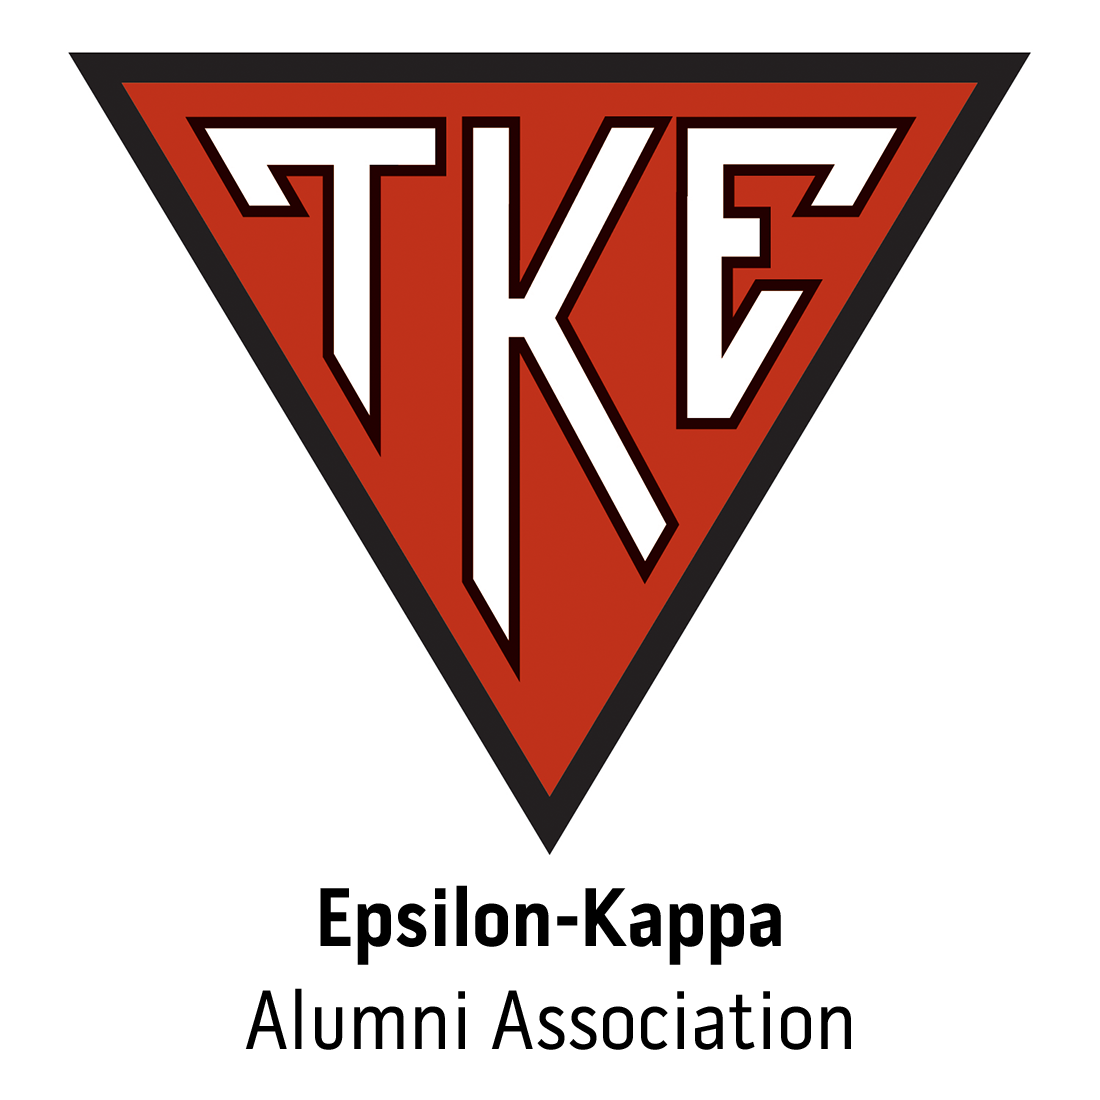 Epsilon-Kappa Alumni Association Alumni at Loyola University Chicago